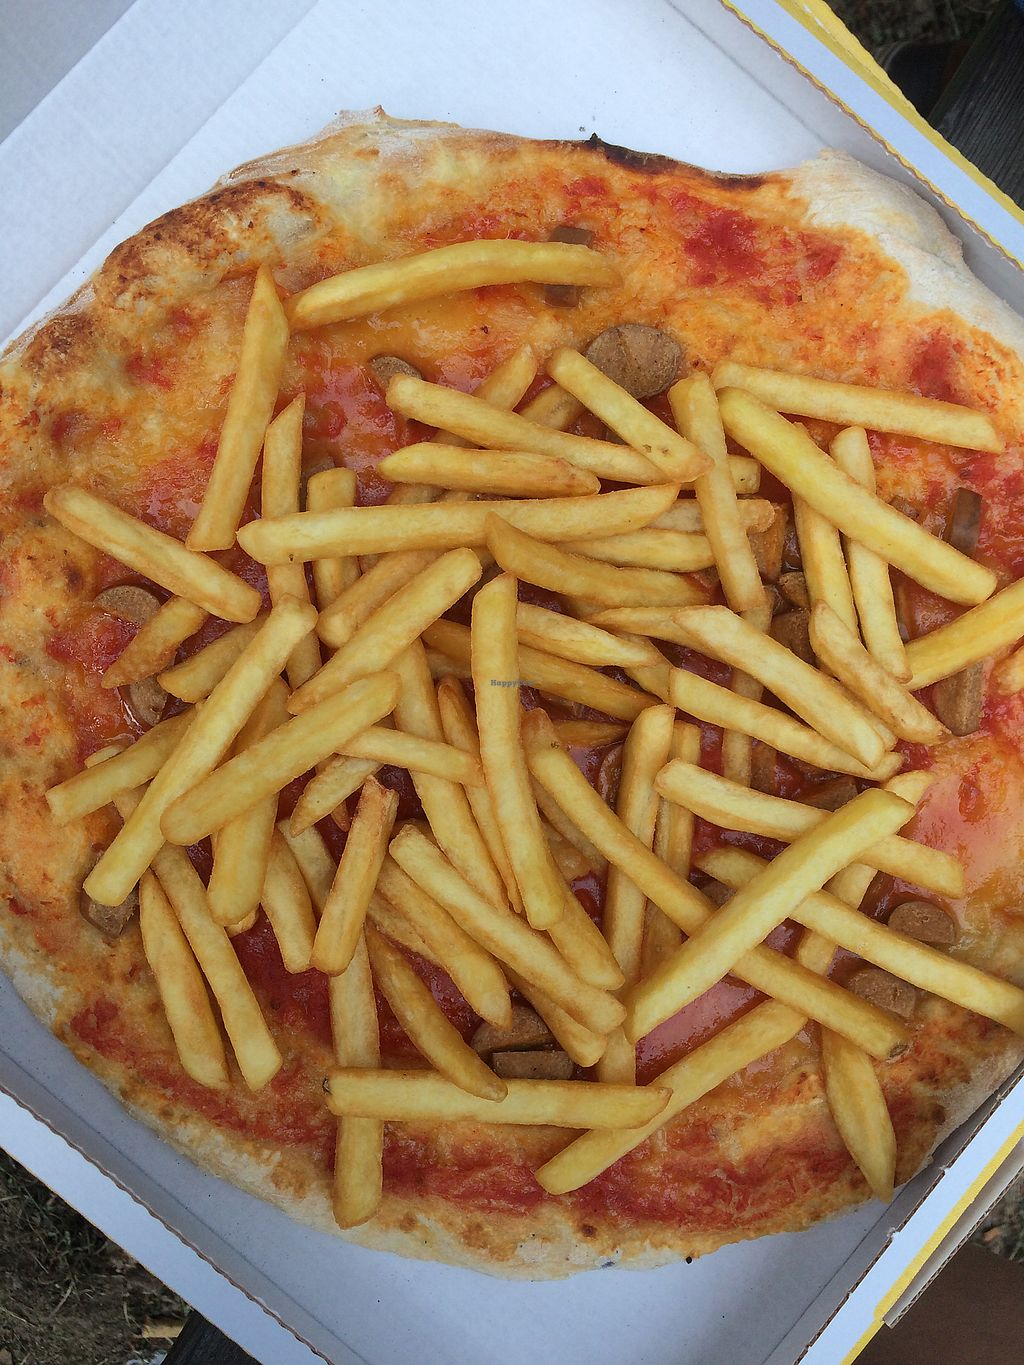 """Photo of Pronto Pizza  by <a href=""""/members/profile/veg%C3%A9line"""">vegéline</a> <br/>pizze america 269 <br/> August 1, 2017  - <a href='/contact/abuse/image/67579/287826'>Report</a>"""